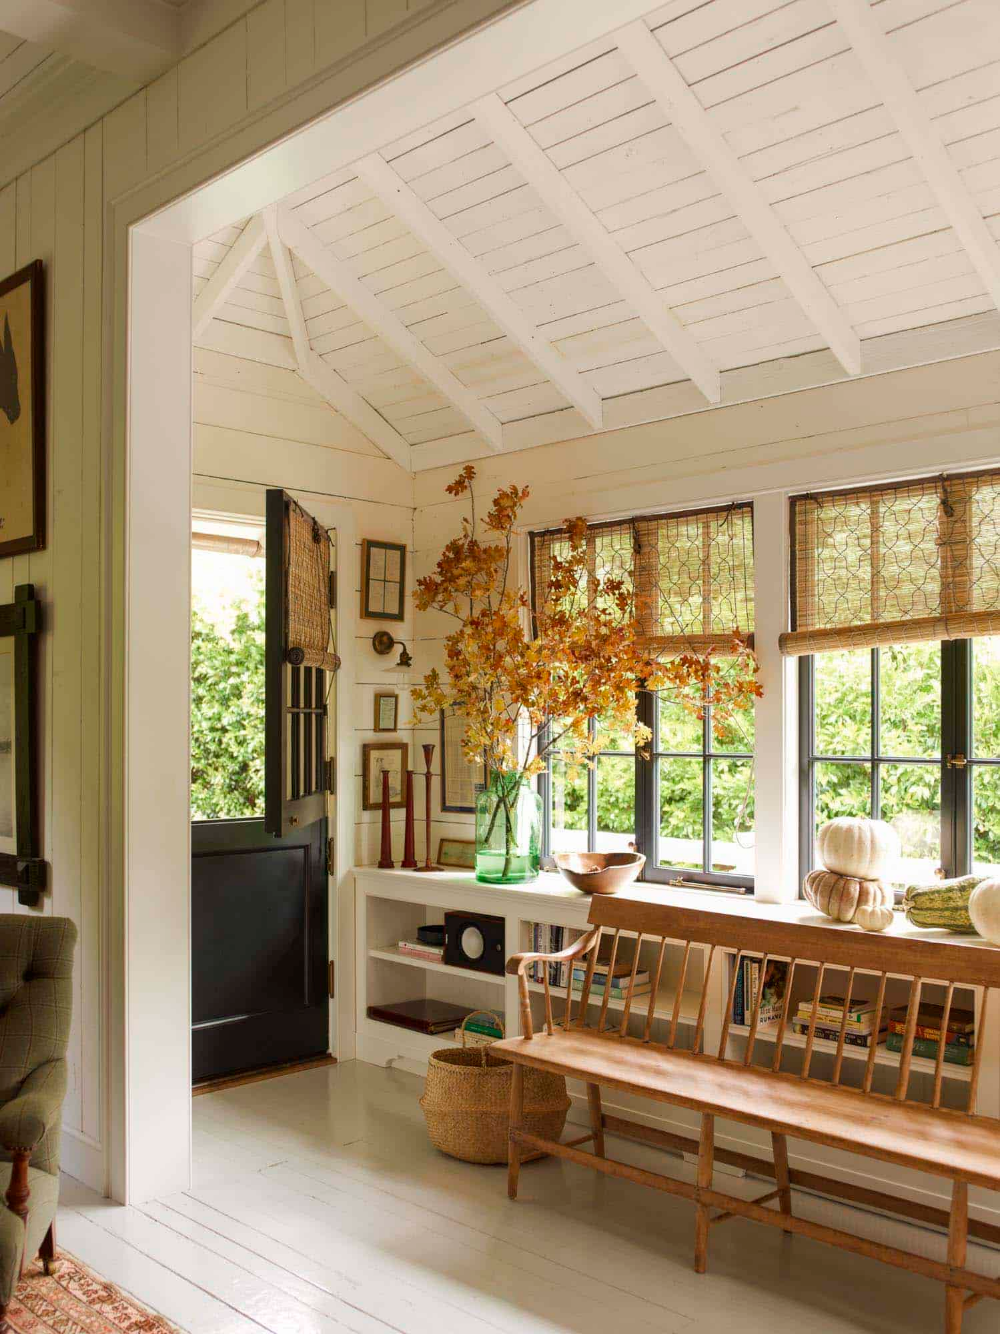 Charming countryside home in Mill Valley gets inspiring transformation